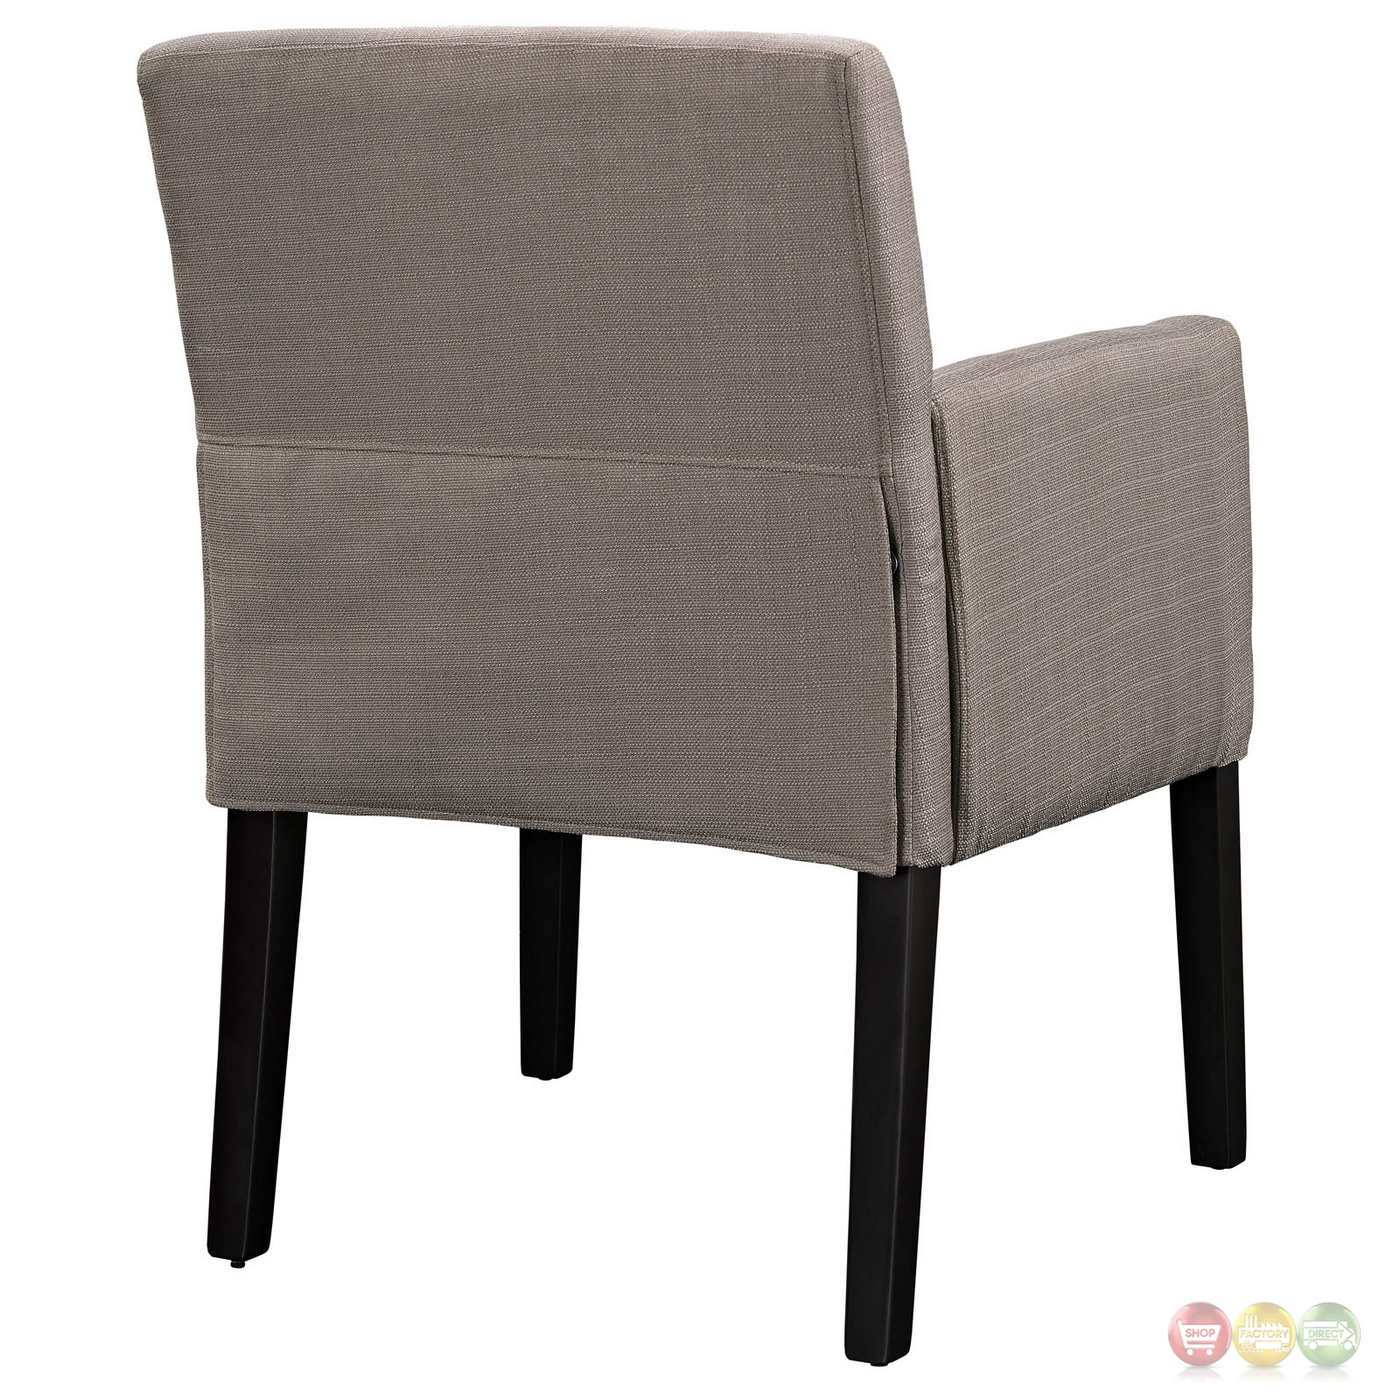 Chloe contemporary upholstered armchair with wooden legs gray for Armchair builder